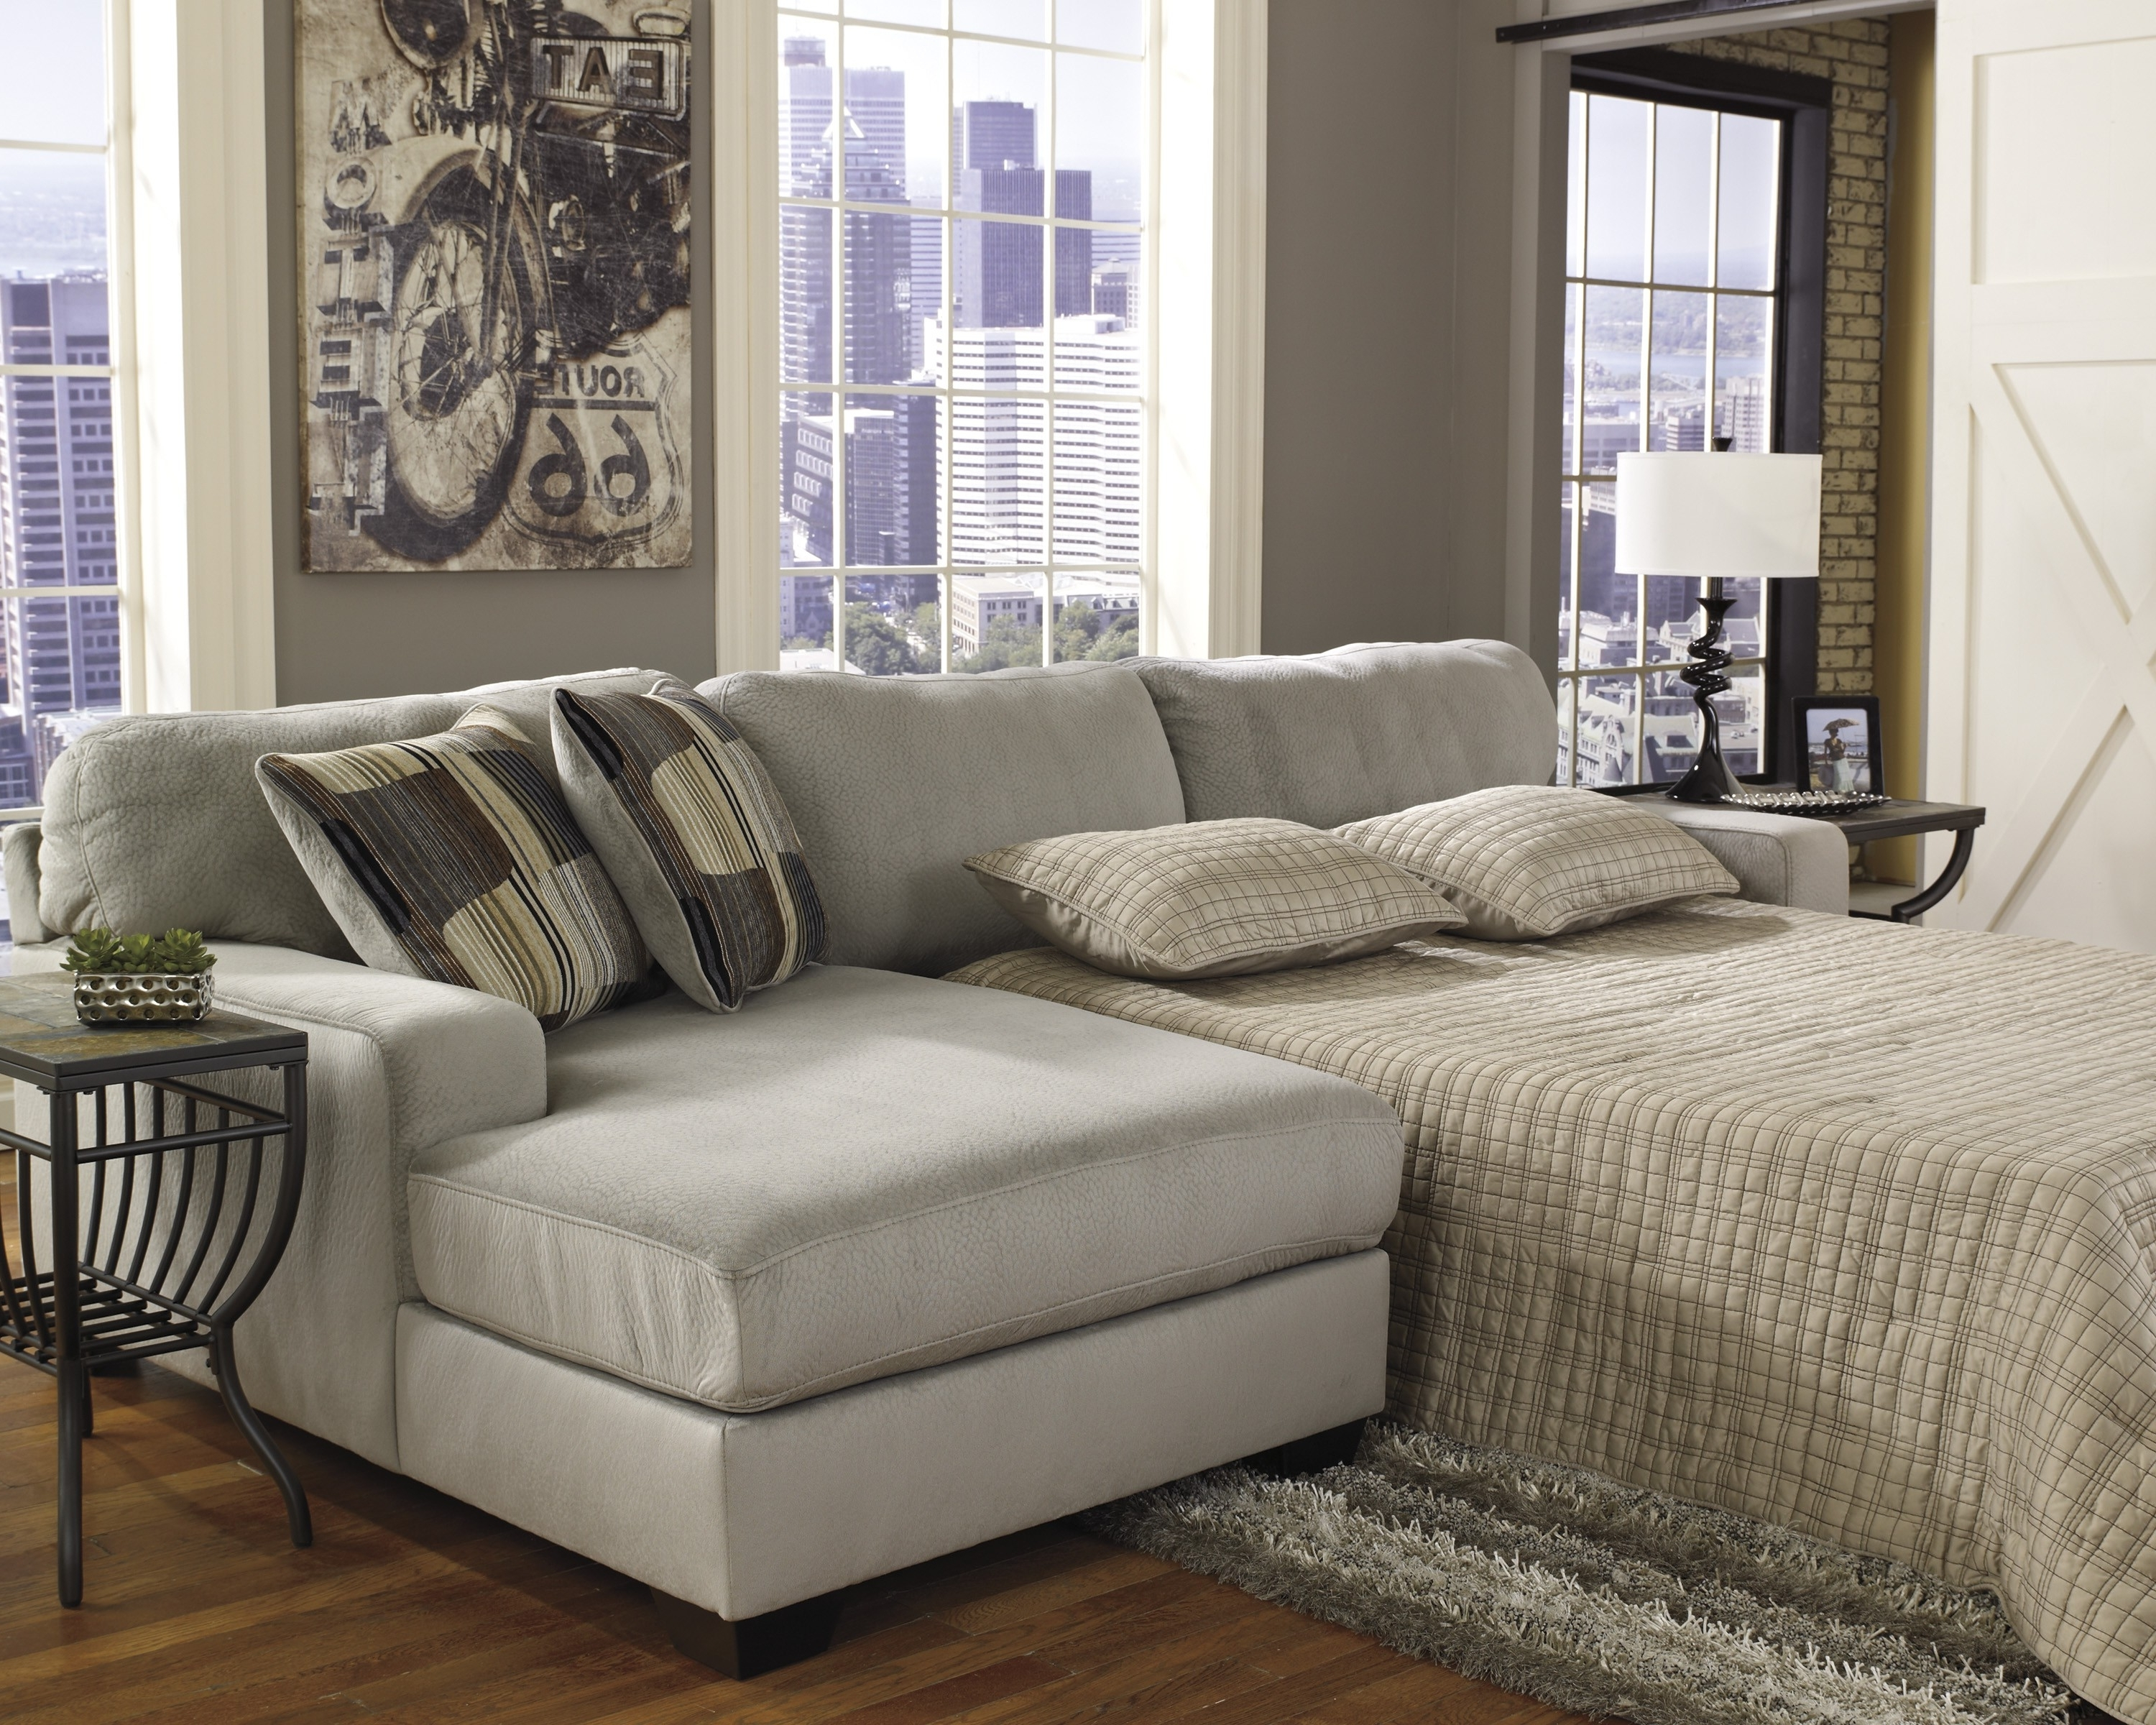 Best And Newest Adjustable Sectional Sofas With Queen Bed Within Sofa : Magnificent Sectional Sofa Queen Bed Great Sleeper (View 5 of 20)